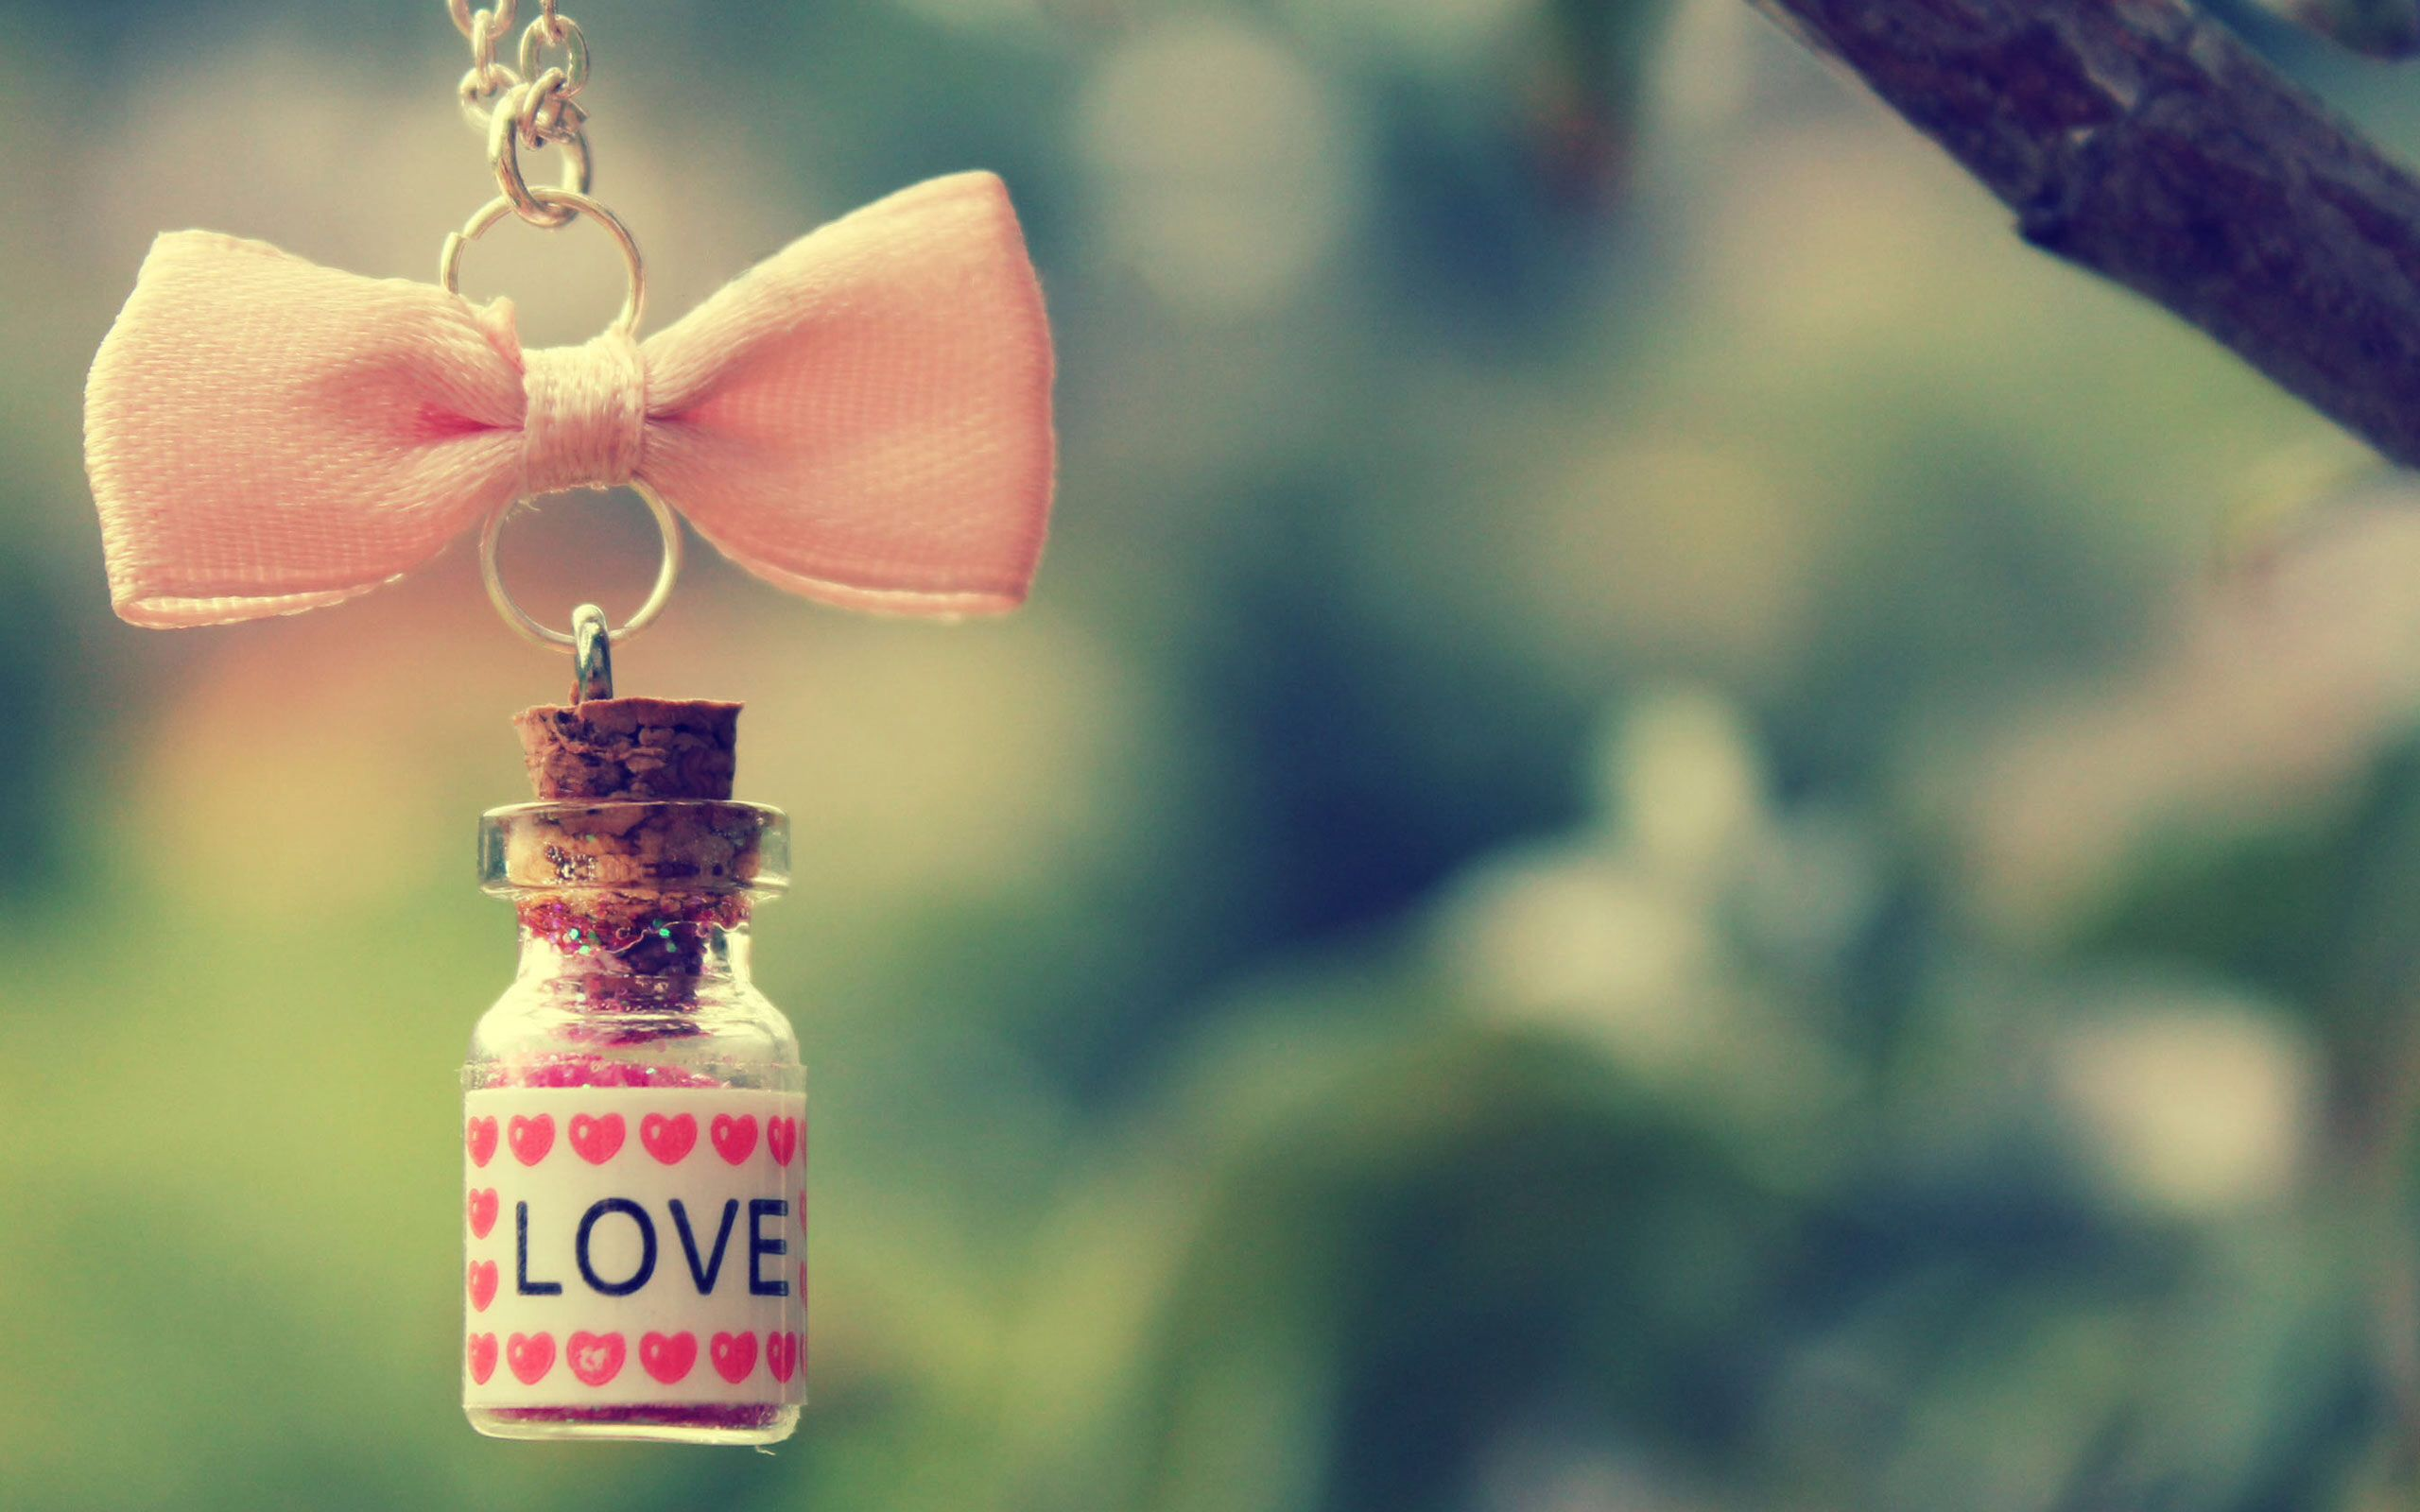 Love bottle charm wallpaper Wallpapers Cute love wallpapers 2560x1600